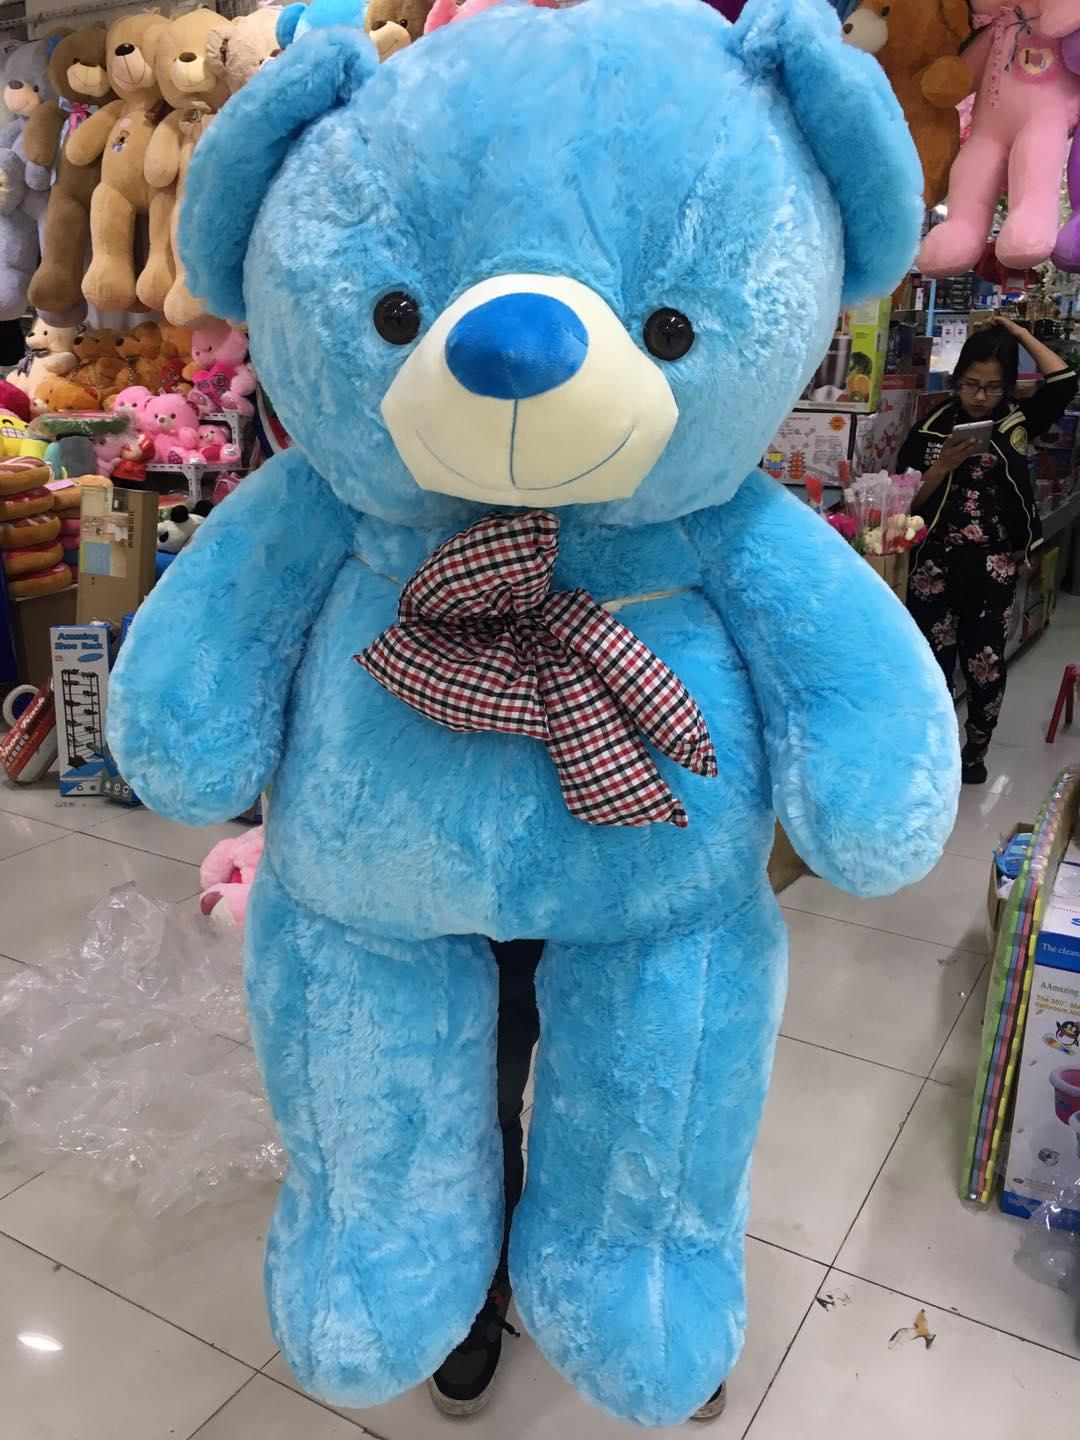 Teddy bear Stuff toy human size bear almost 5ft or 130cm for gift birthday